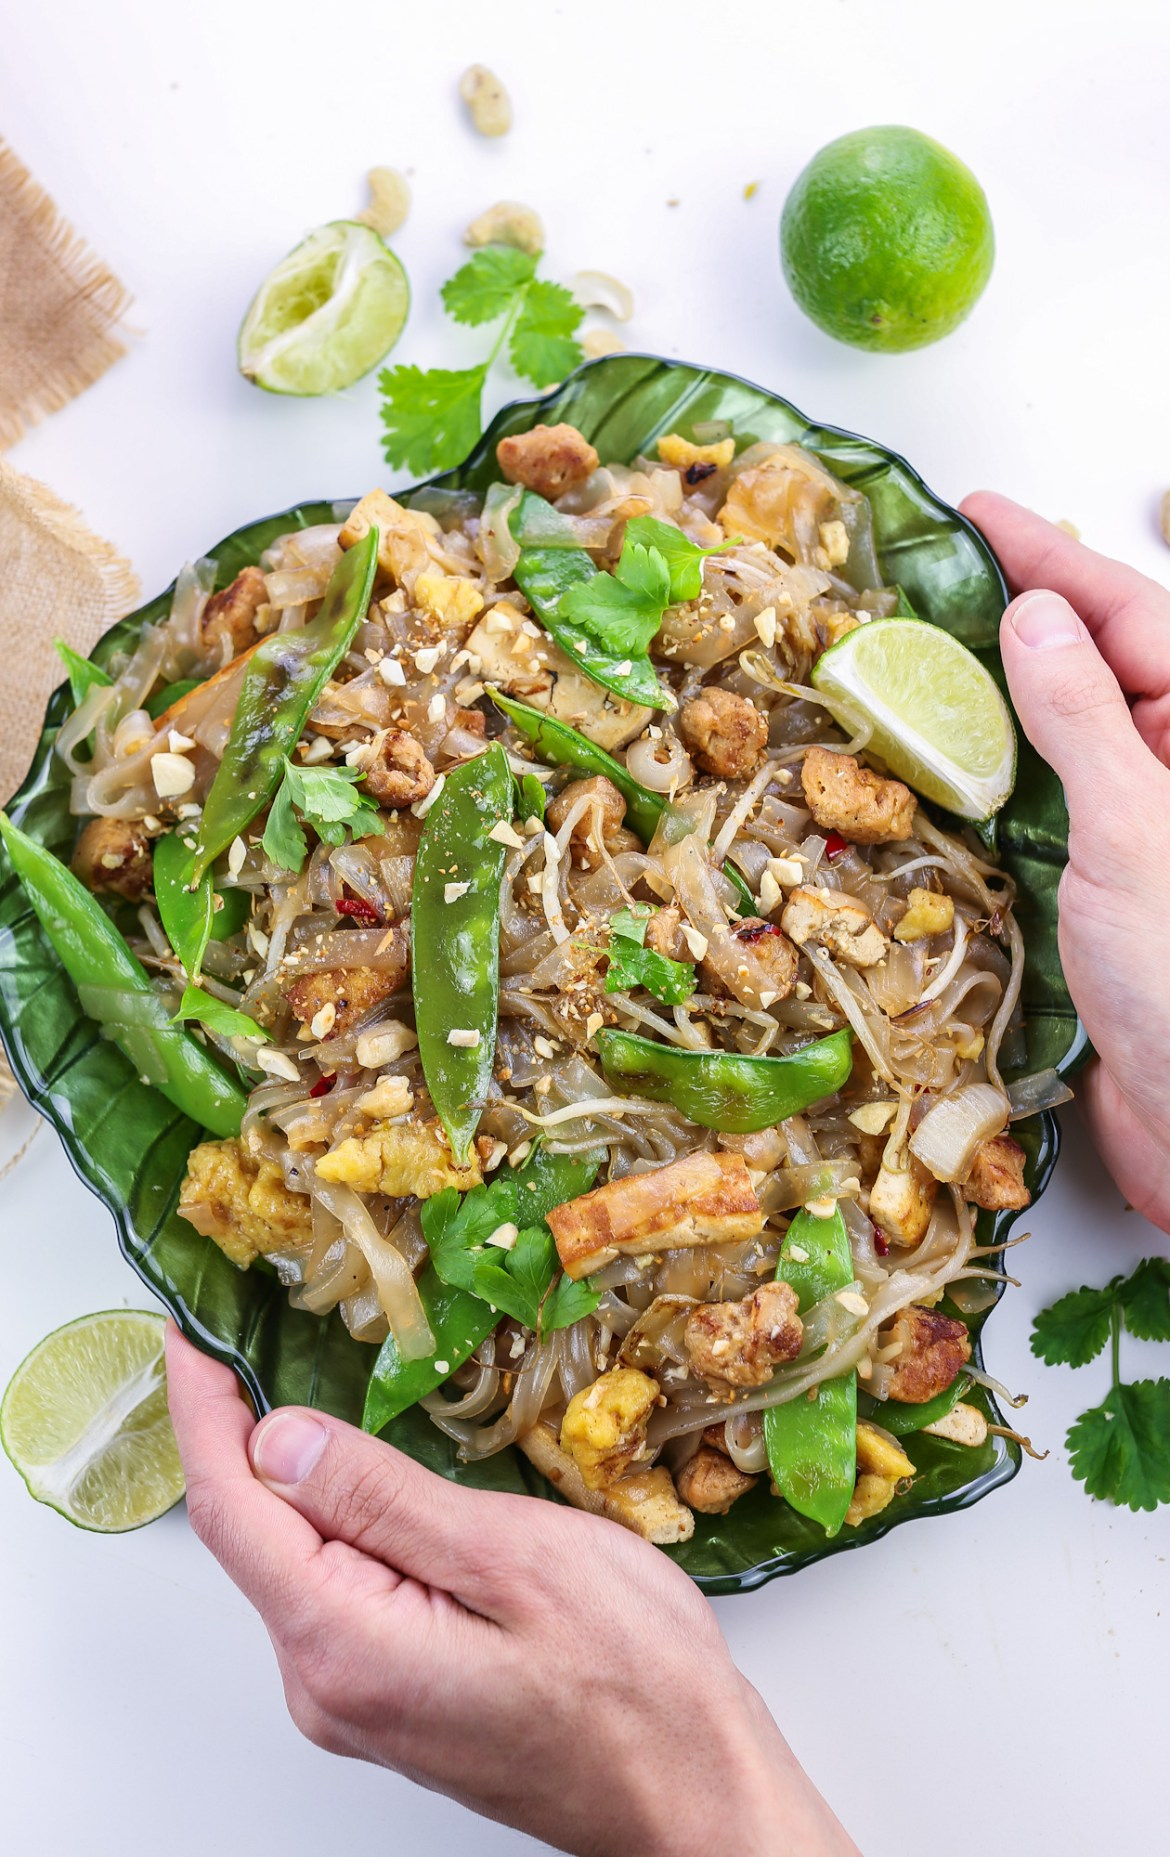 noodles and vegetables pad thai style served on a leaf shaped green plate, topped with cashews, lime wedges and cilantro leaves plate hold by both hands